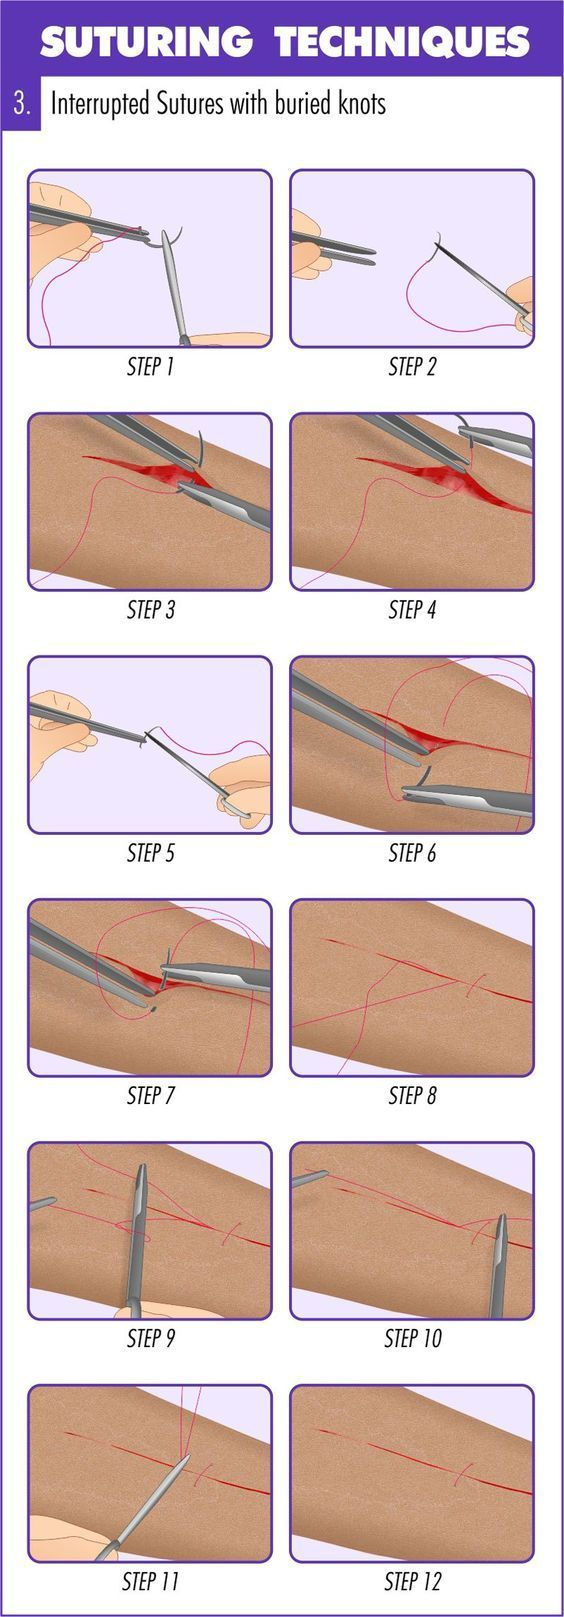 Medical Basics - Medical Education Made Simple #surgicaltechnologist Surgical Suturing Techniques Mastery Guide #nursingschool #nurse #rn #nursing #nurses #nursingstudent #resources #study #inspiration #school #tips #surgicaltechnologist